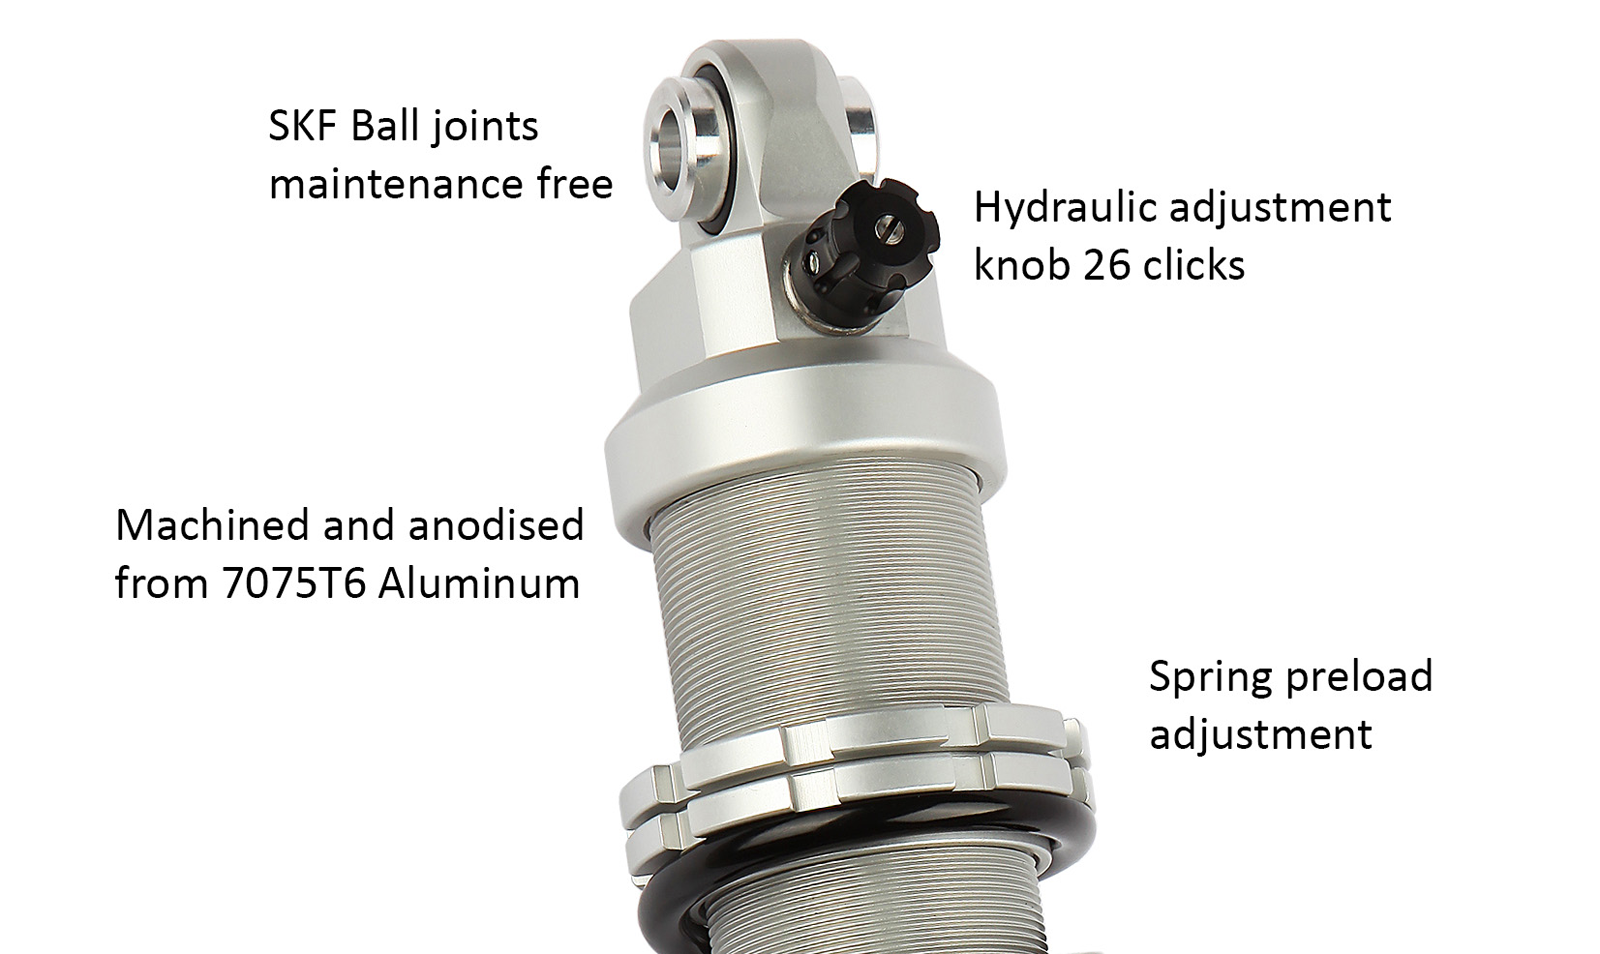 Details - Twin Alu shock absorber